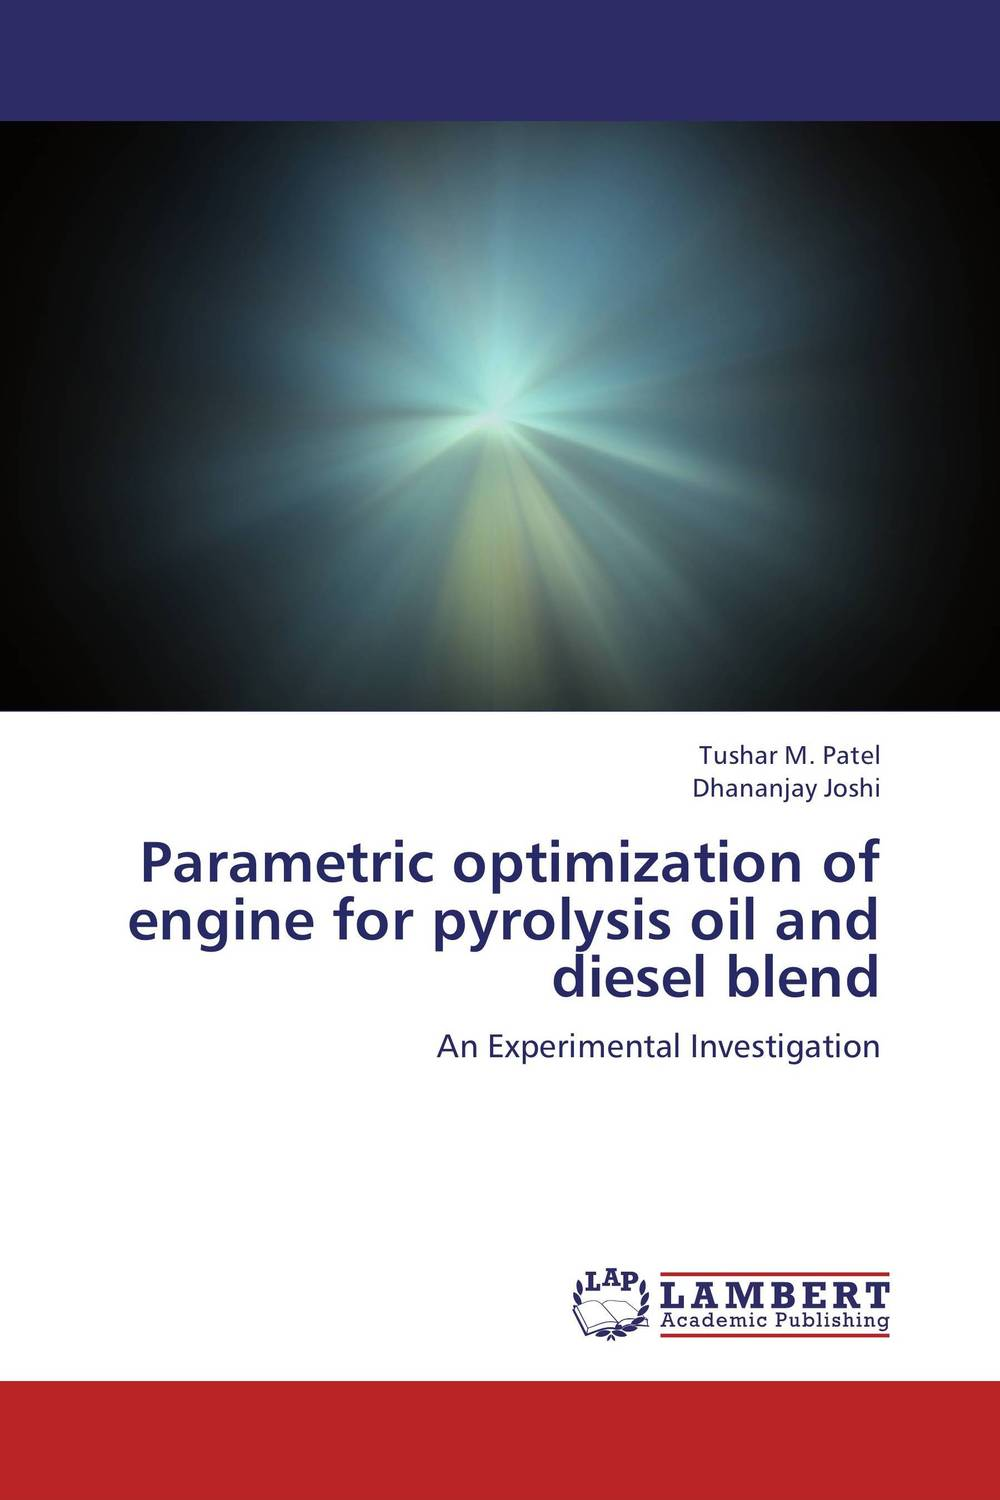 Parametric optimization of engine for pyrolysis oil and diesel blend bruce clay search engine optimization all in one for dummies